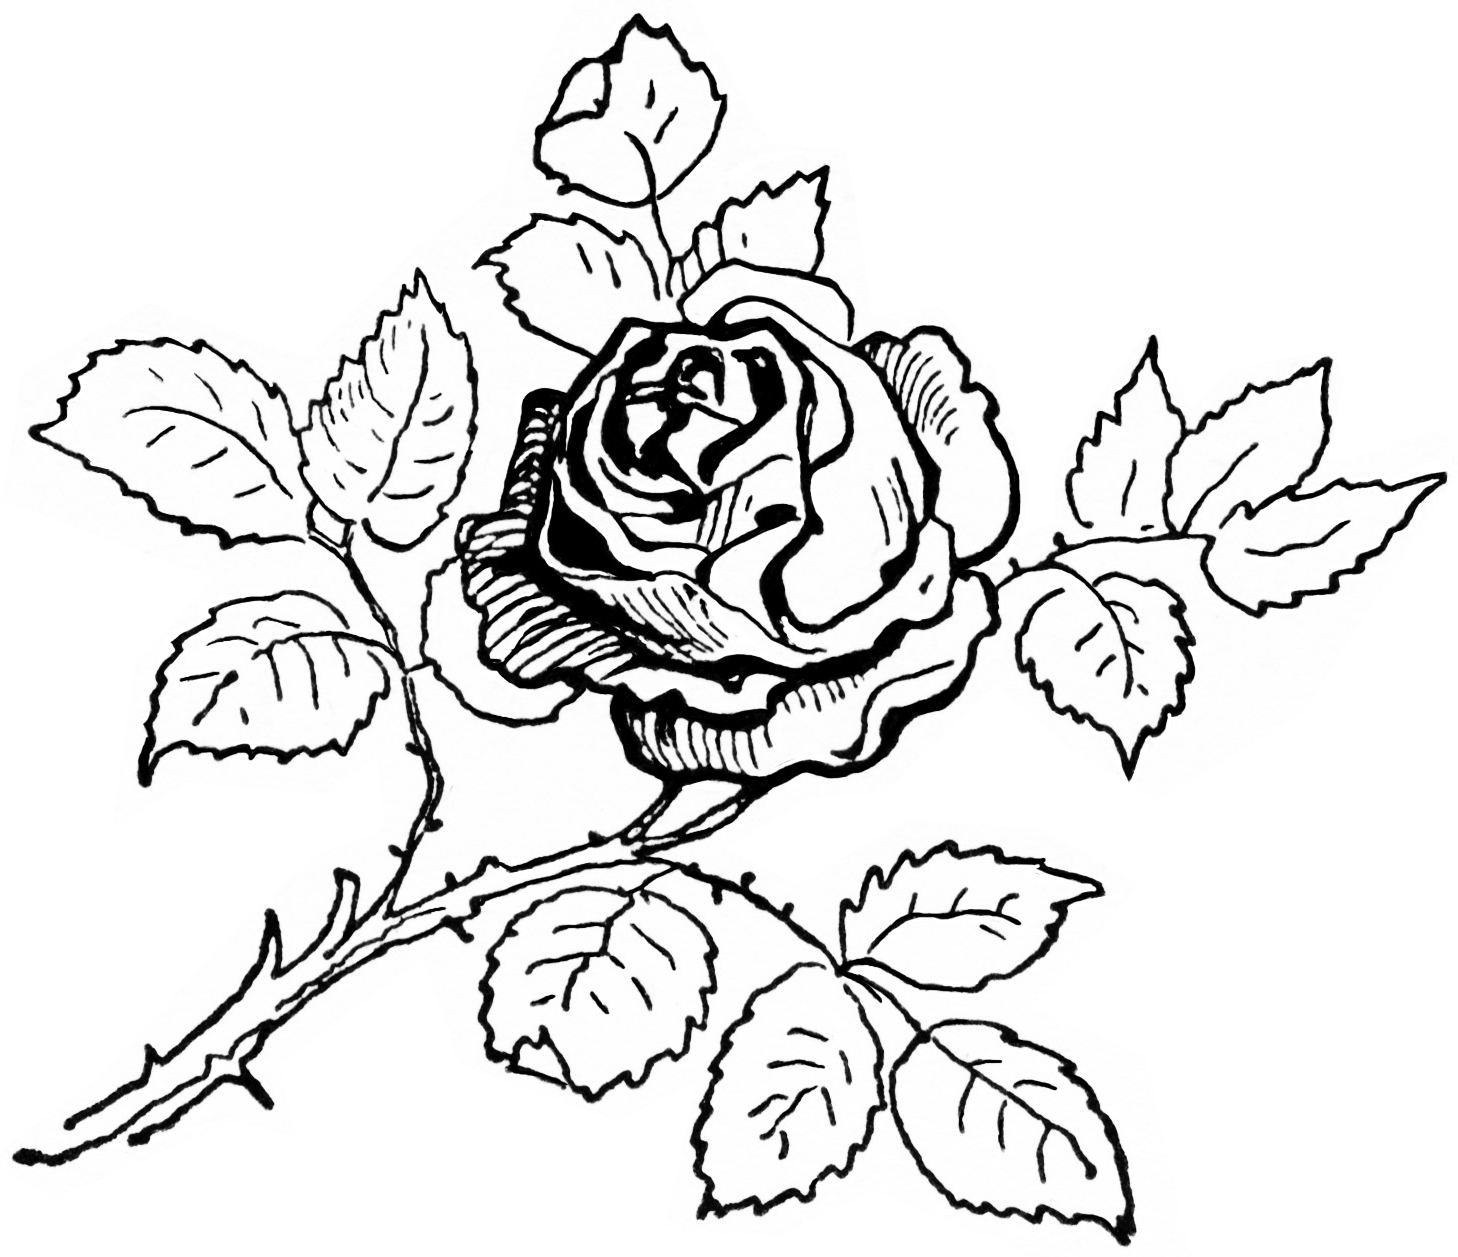 1458x1257 Full Hd Rose Line Drawing Photo 3d Rose Drawings Black And White